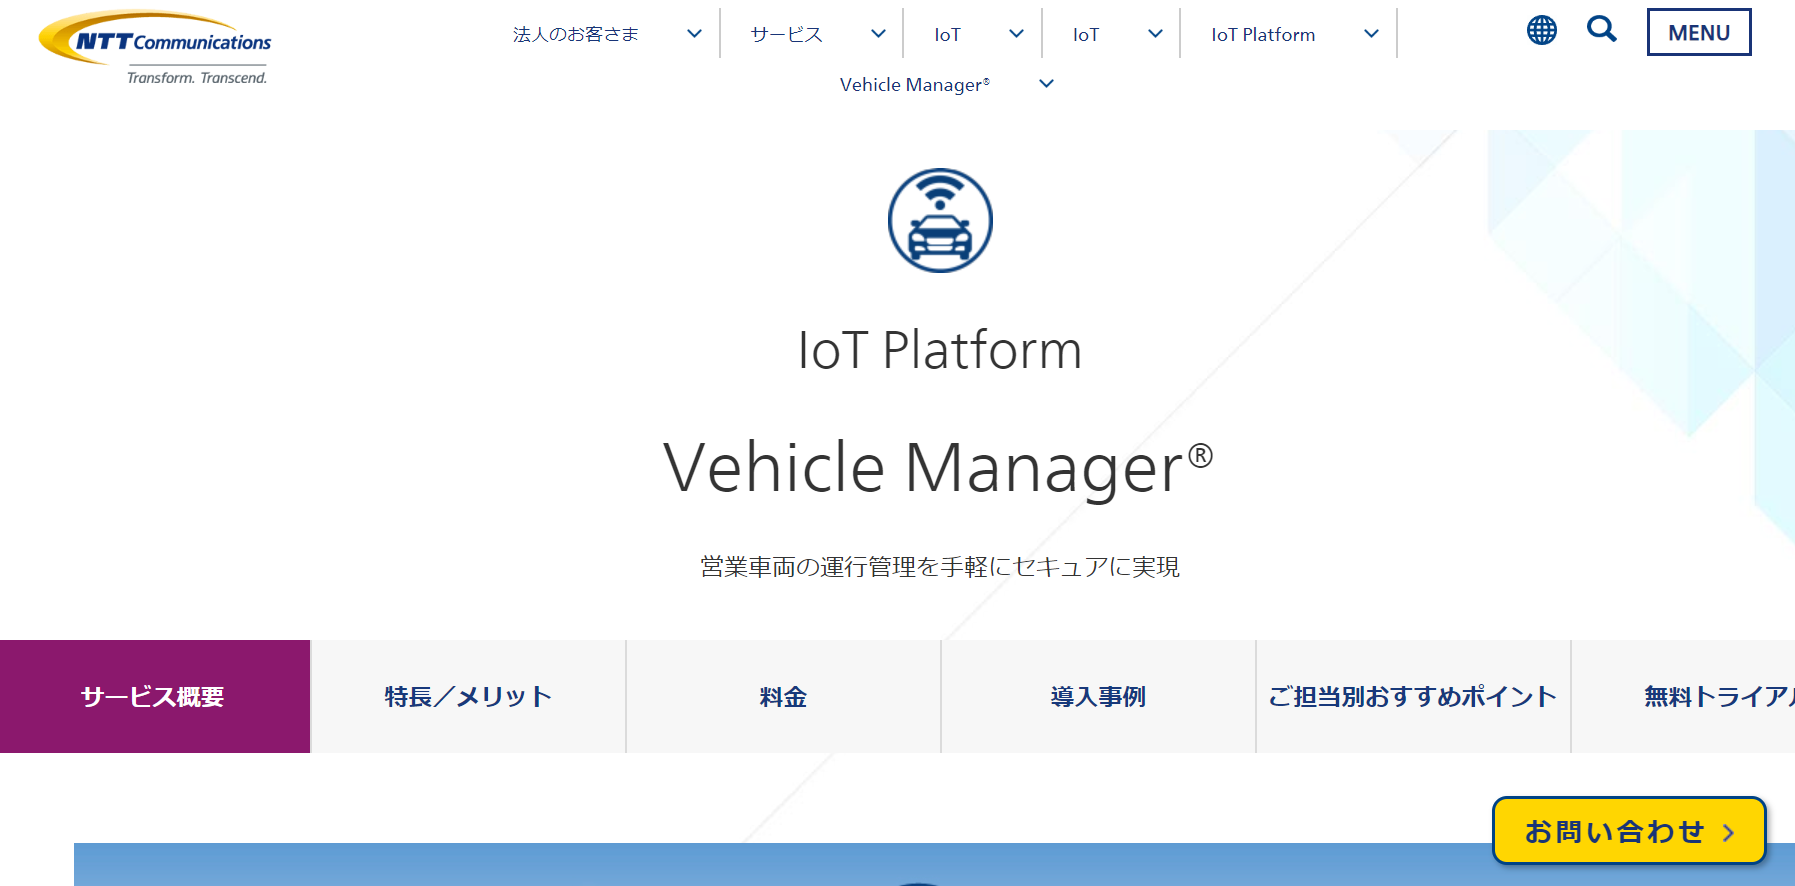 Vehicle Manager®